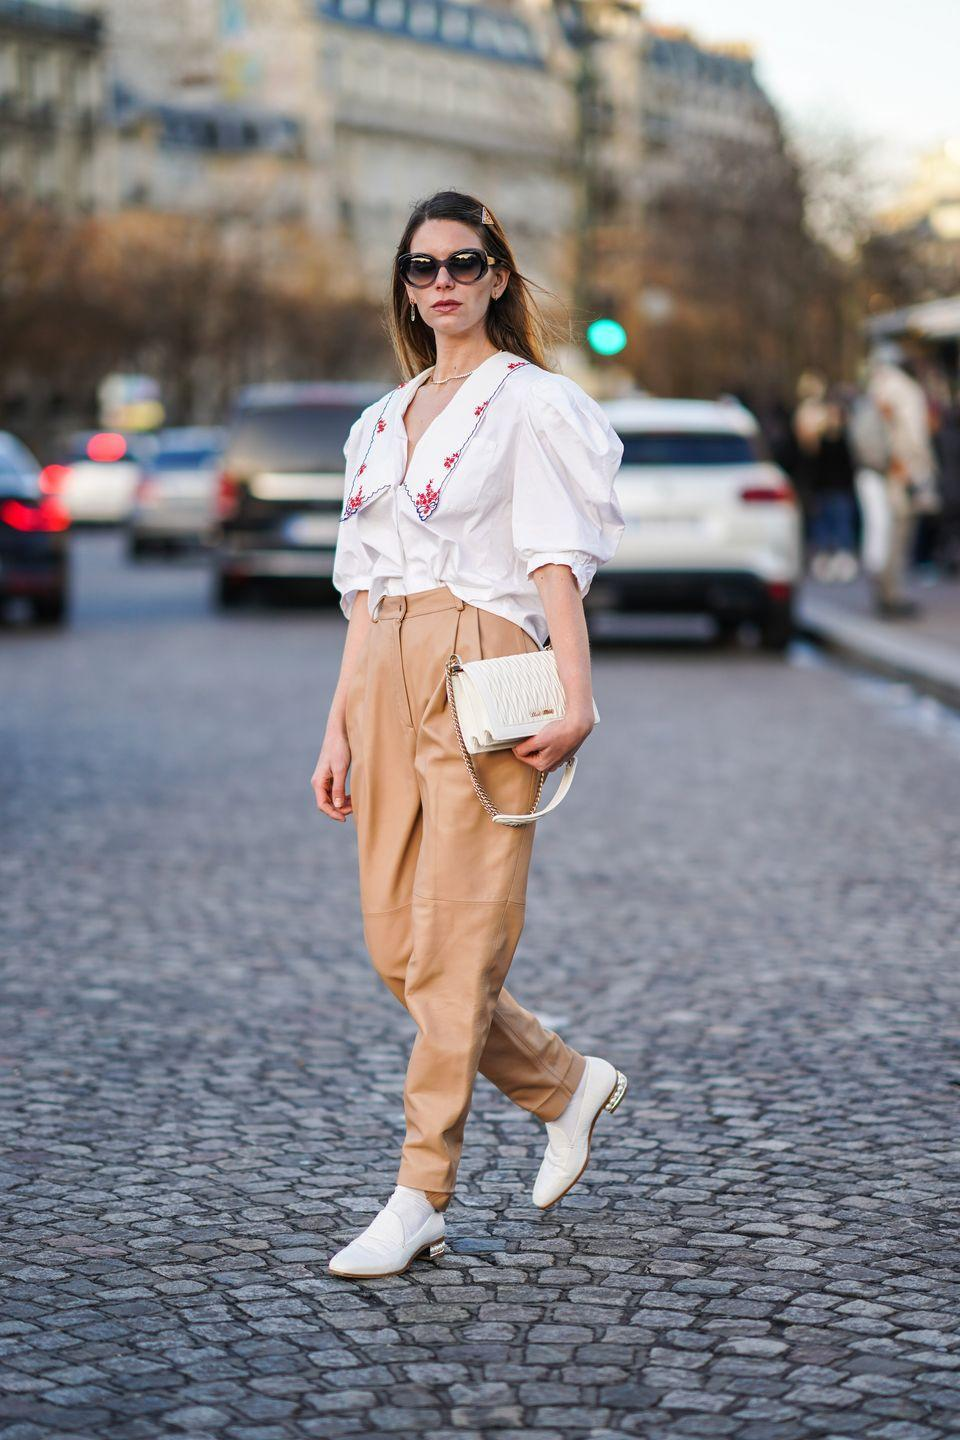 <p>Oversized collars are a vibe I can get behind. Style the extra girly look with simple trousers and plain white shoes for an elevated look.<br><br></p>